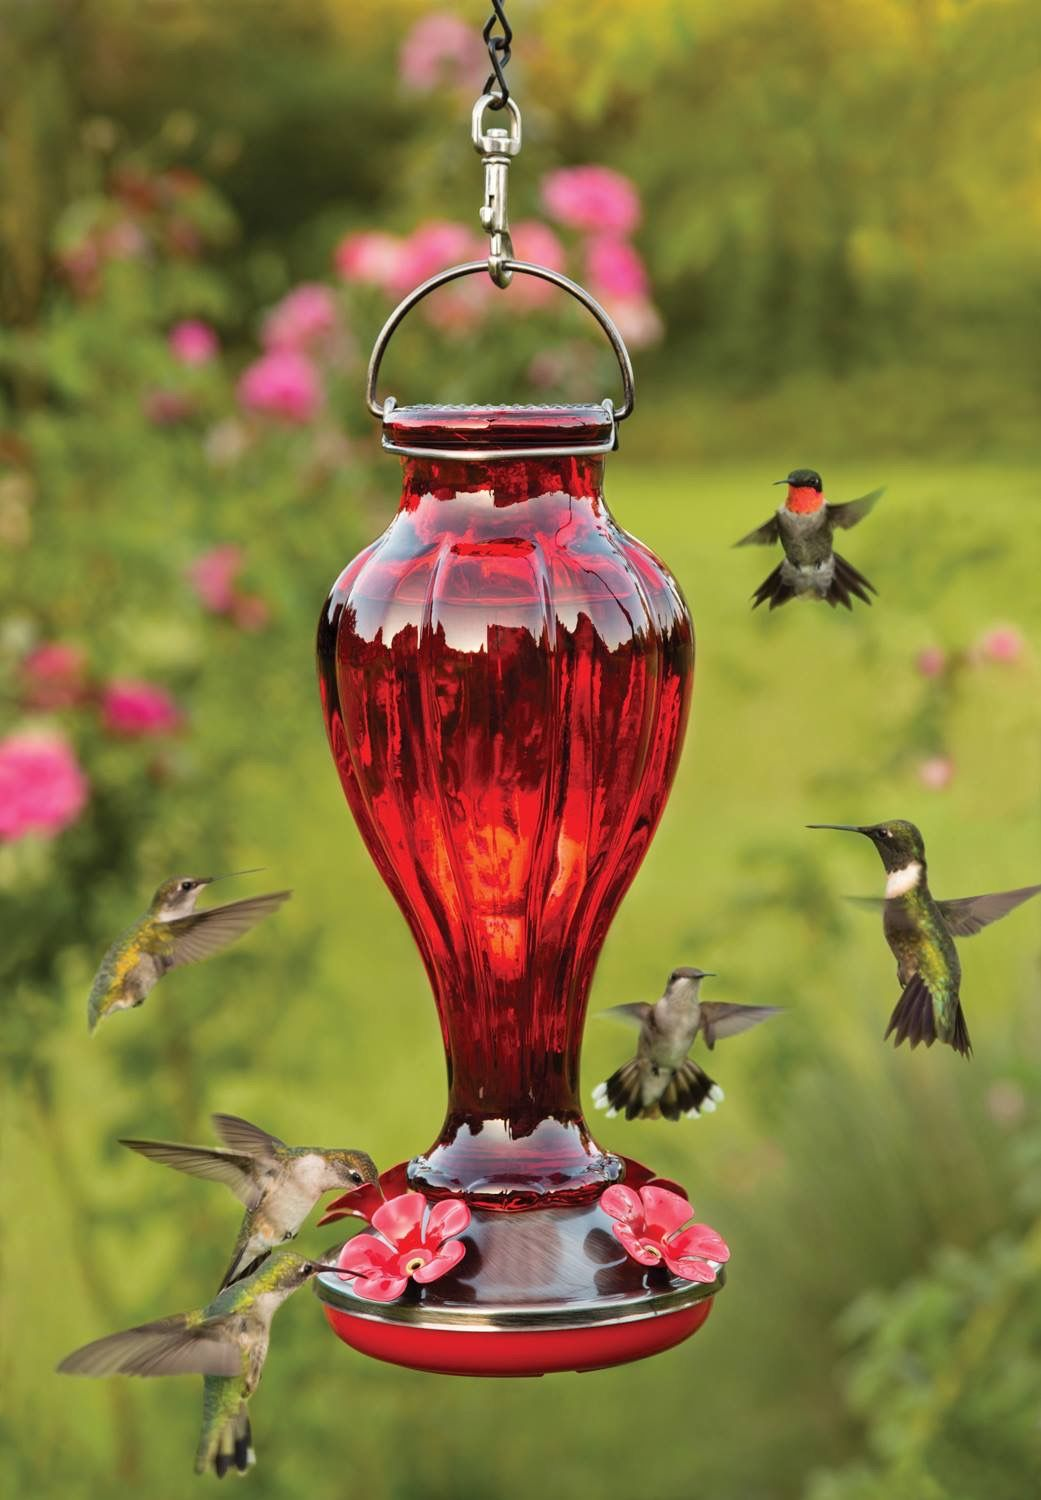 Pin by It Takes Two on Gardens in Color Humming bird